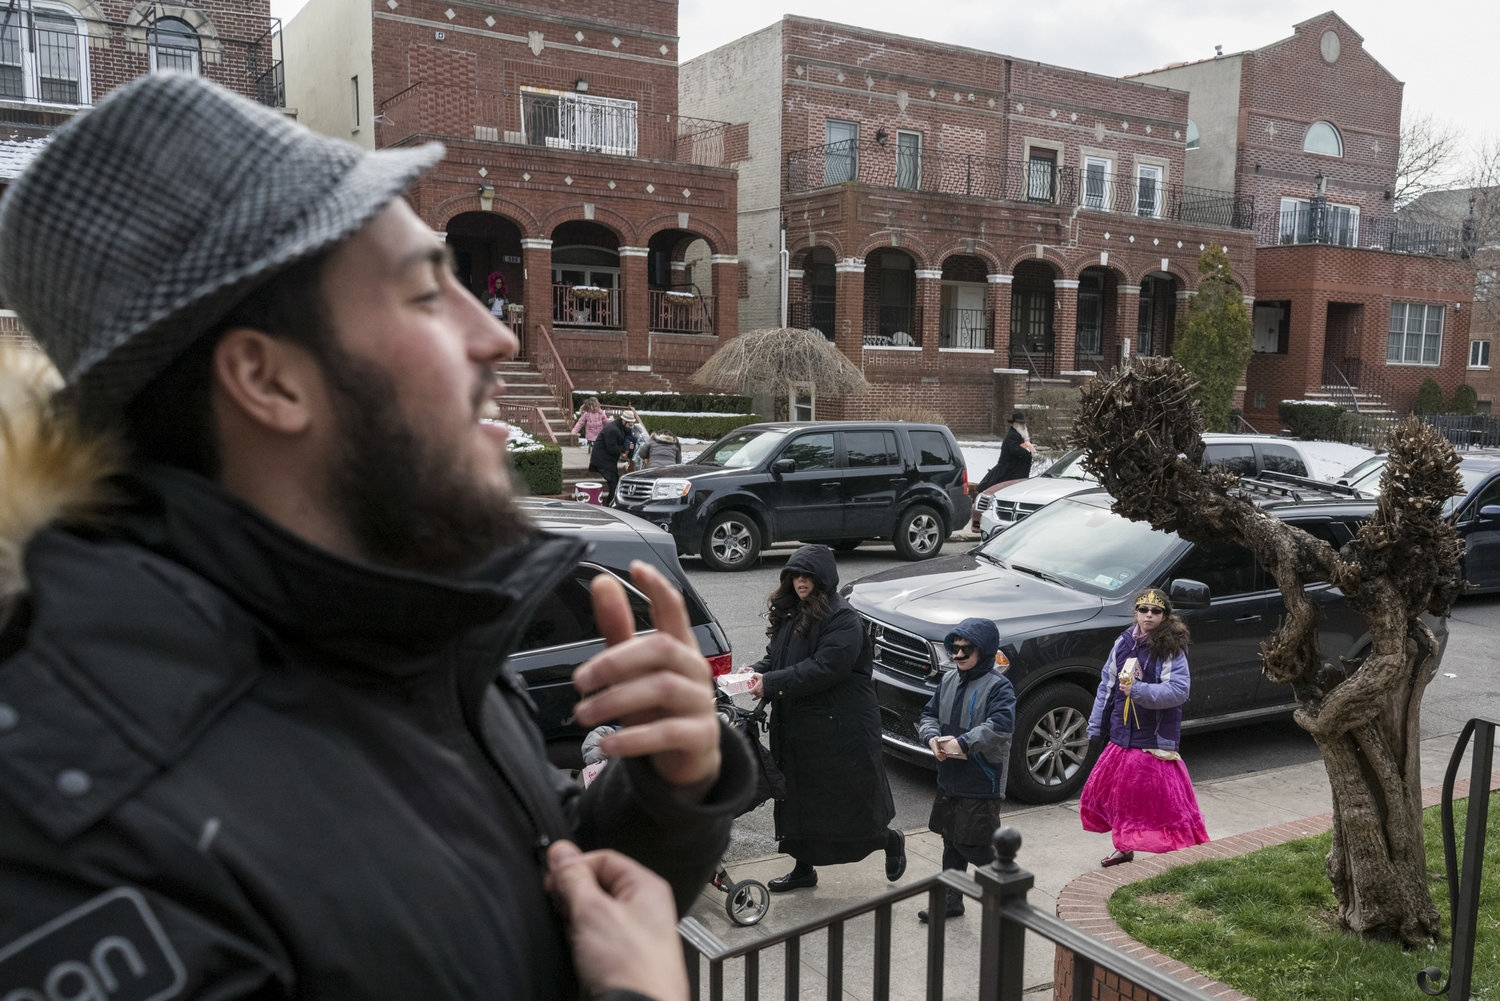 Mendel greets his next door neighbours in Crown Heights, Brooklyn during Purim. He and his siblings grew up in the same house until he left to study Torah at the Midtown Manhattan Chabad center.